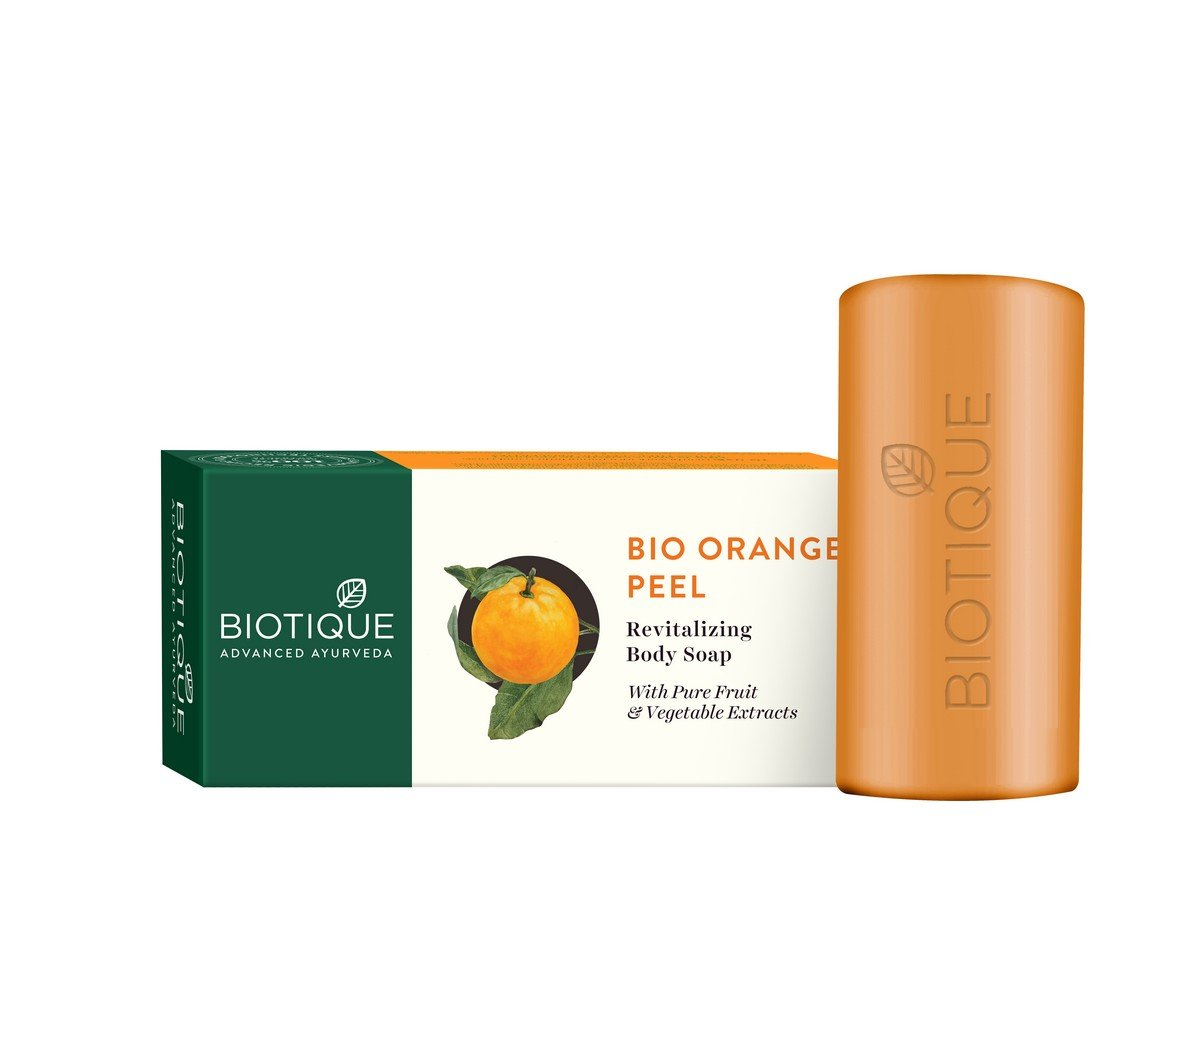 Biotique Bio Orange Peel Body Revitalizing Body Soap